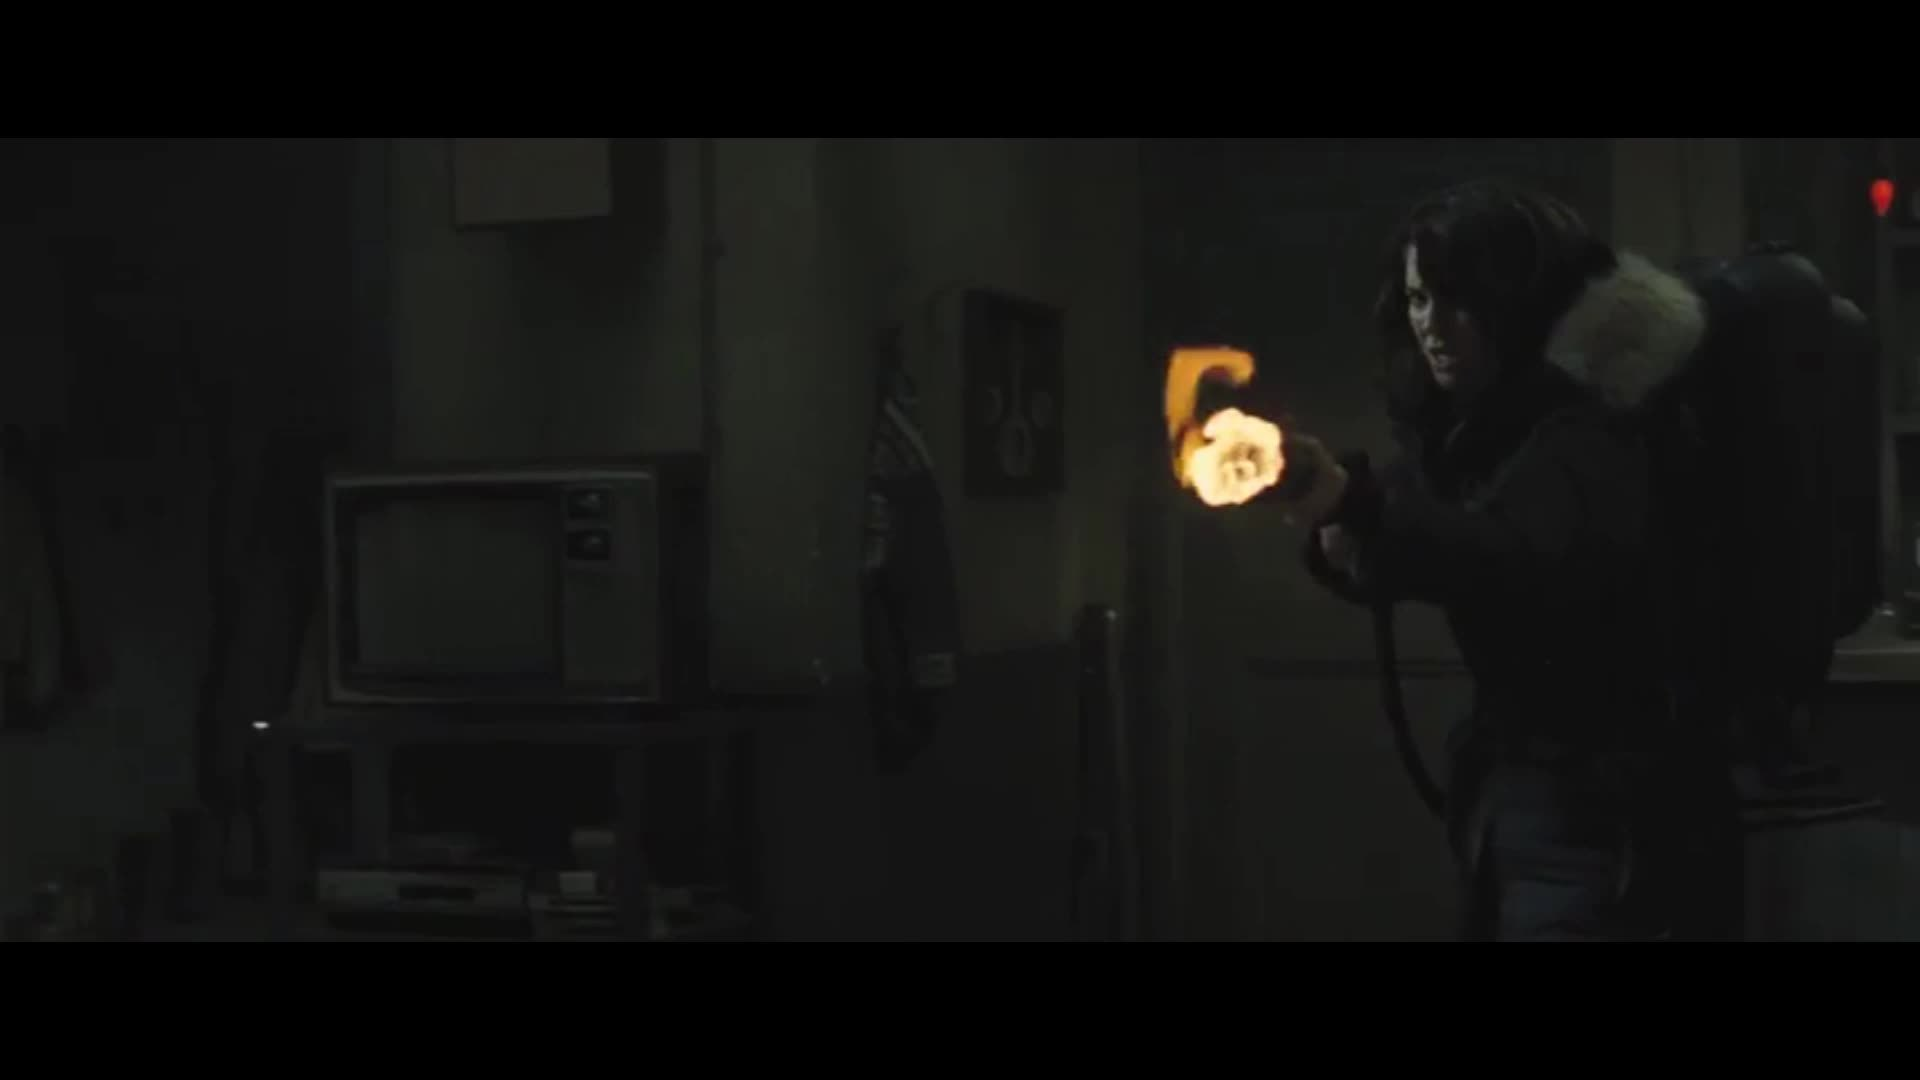 MaryElizabethWinstead, maryelizabethwinstead, Mary with a flamethrower, lighting up the place (reddit) GIFs